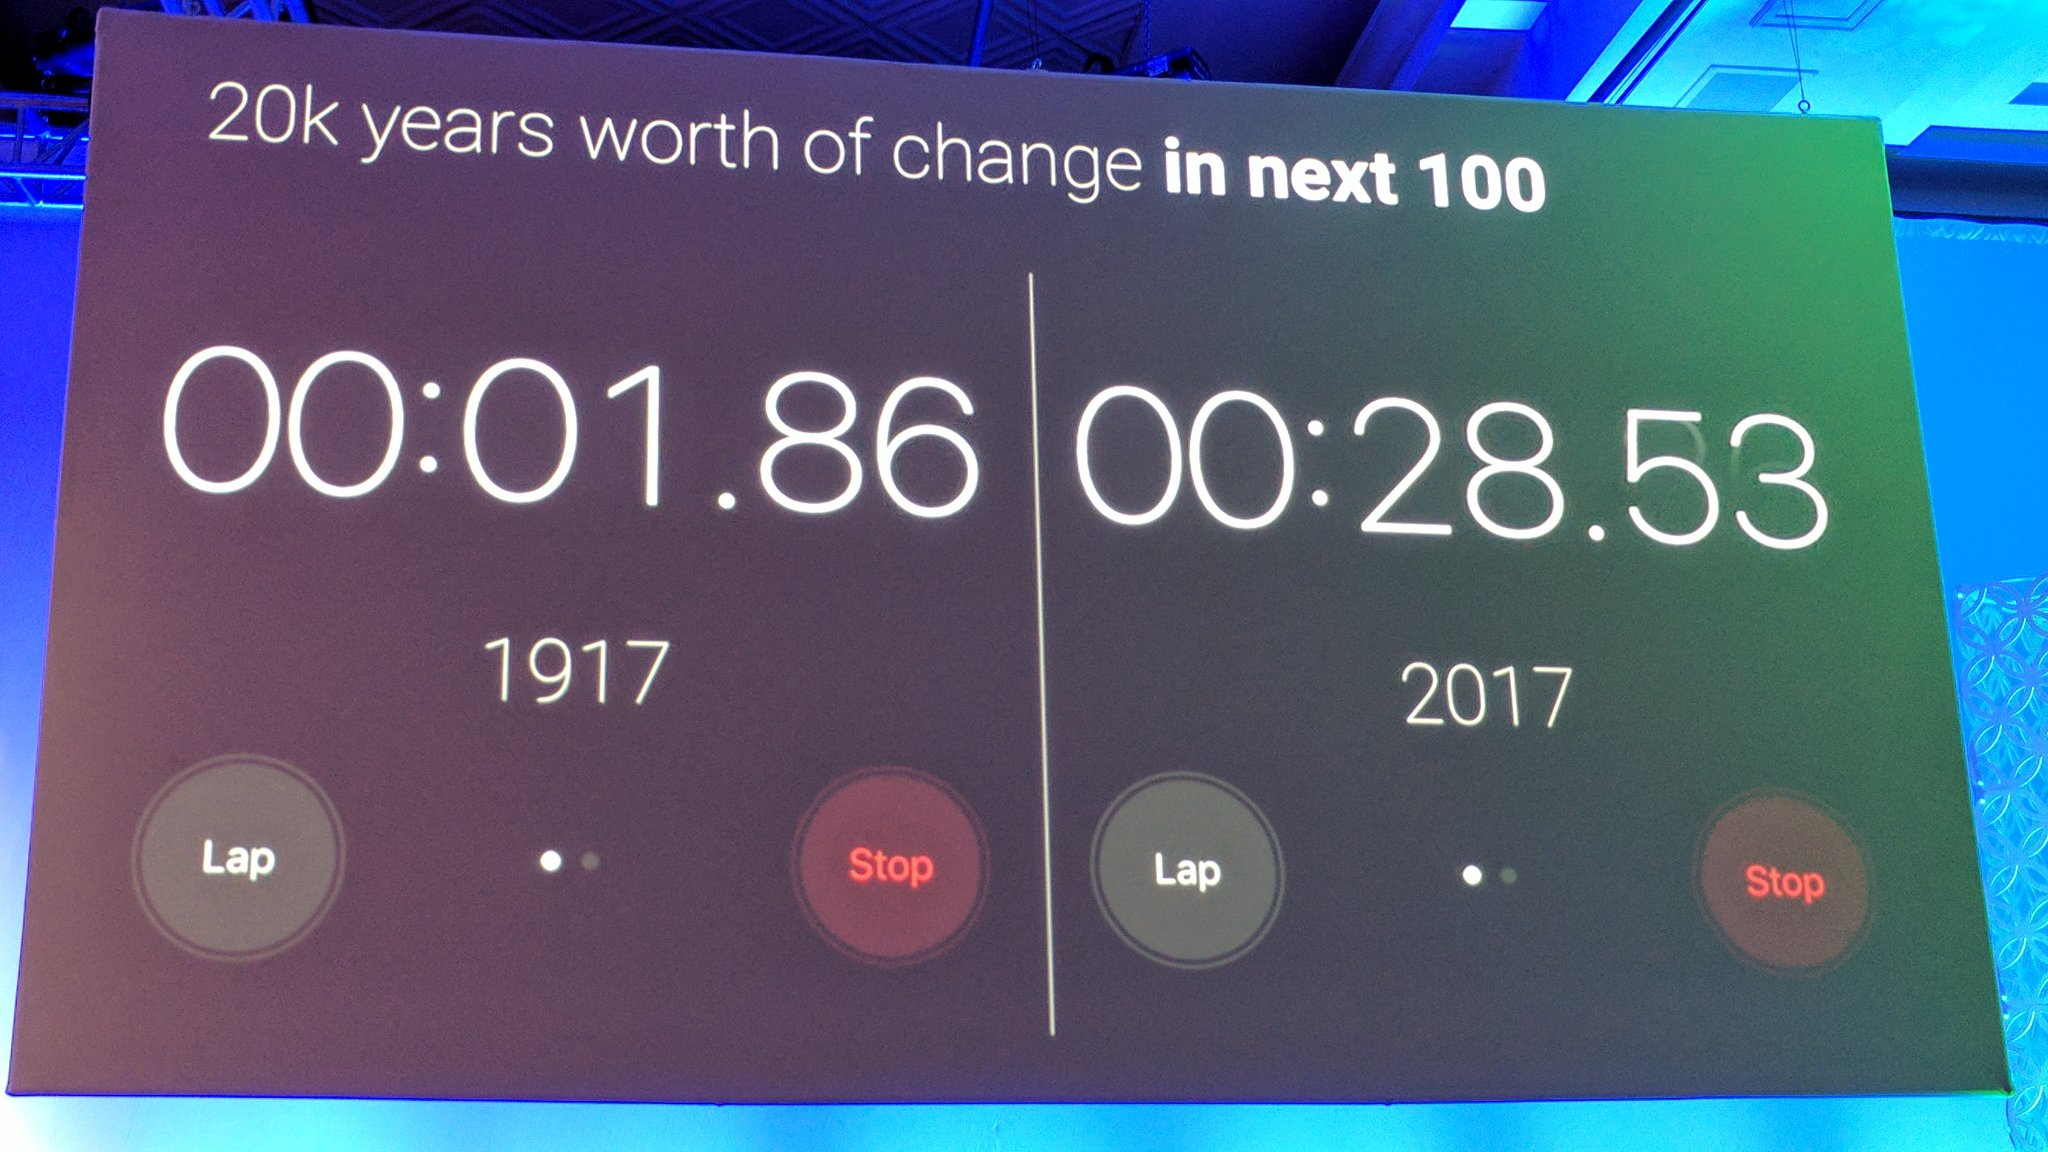 Nielsen -  we will see 20k years of change in the next 100 years. #FFComm17 https://t.co/WgroDf7oXD